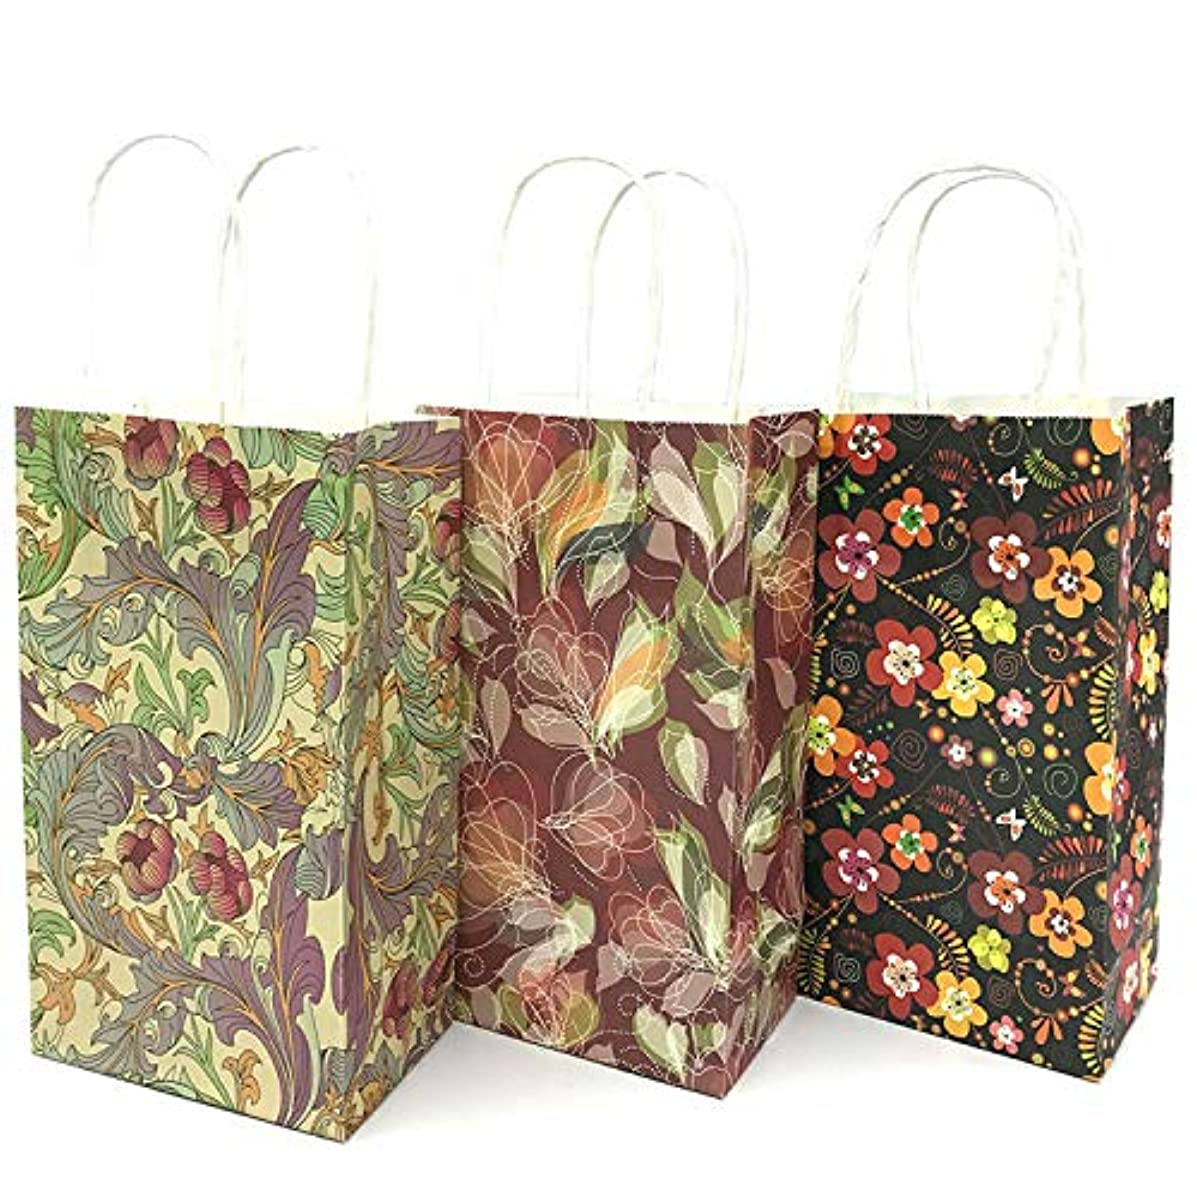 ETUCK 18 Pieces Flower Paper Party Bags Birthday Gift Packs Kraft Party Favors Bag Tea Party Wedding Bag with Handle, 3 Style and Colors (C)